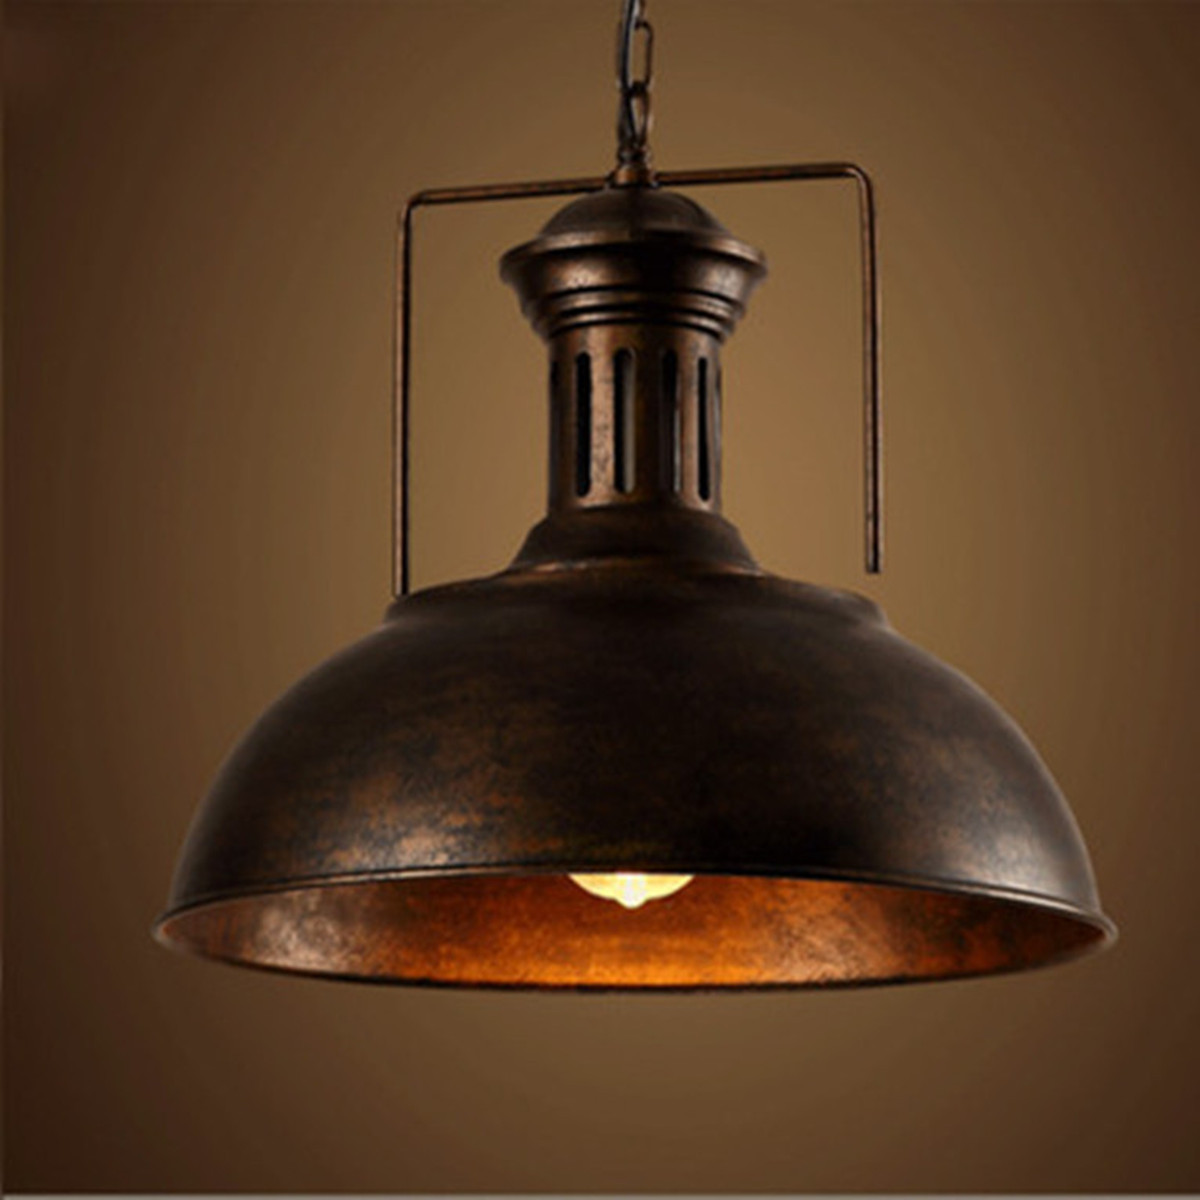 Vintage Industrial Pendant Ceiling Light Fixture Lamp Shades